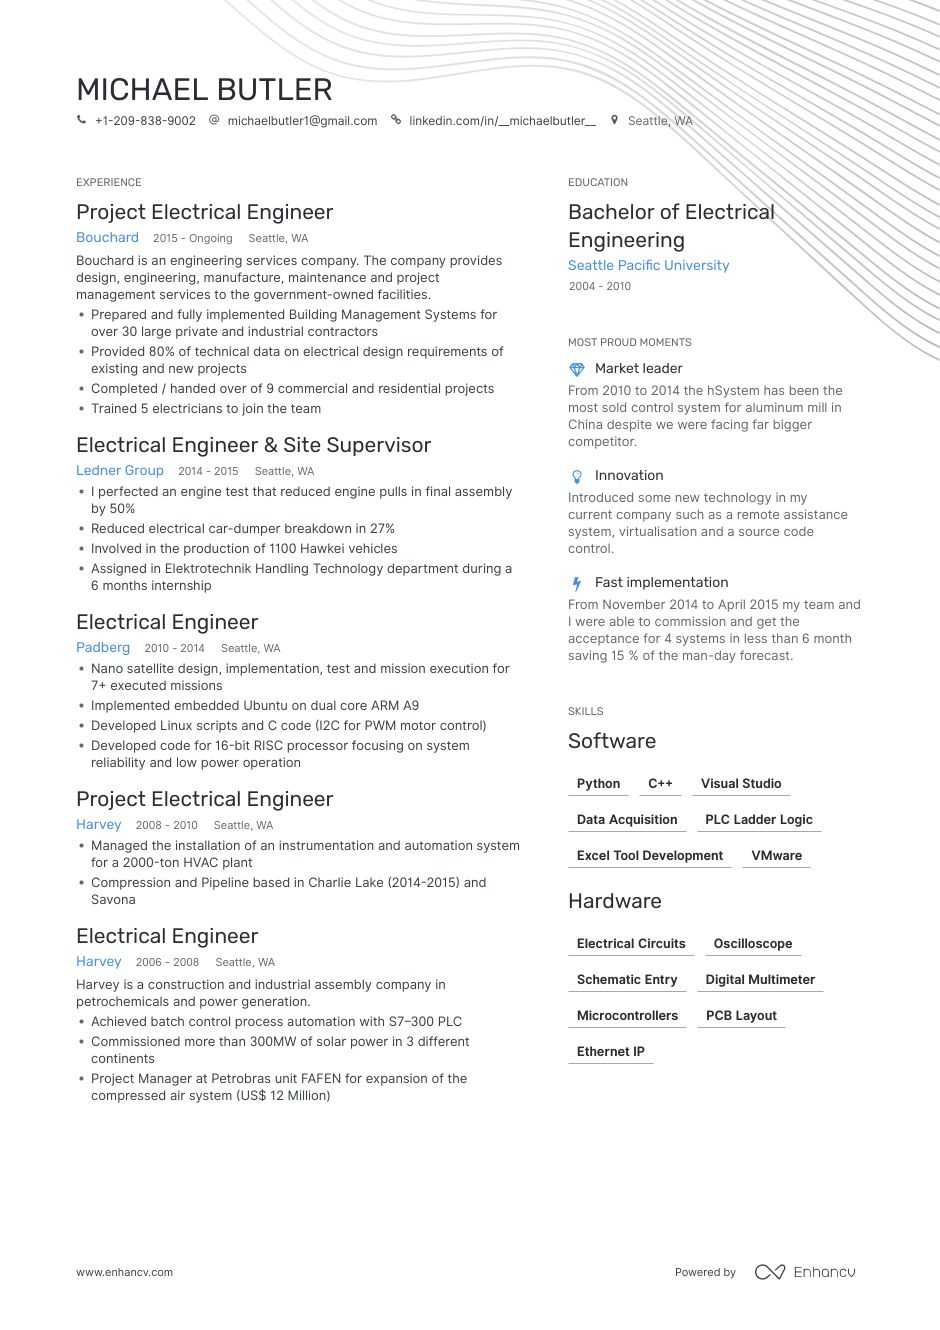 electrical engineer resume examples pro tips featured enhancv technical engineering Resume Technical Resume Examples 2019